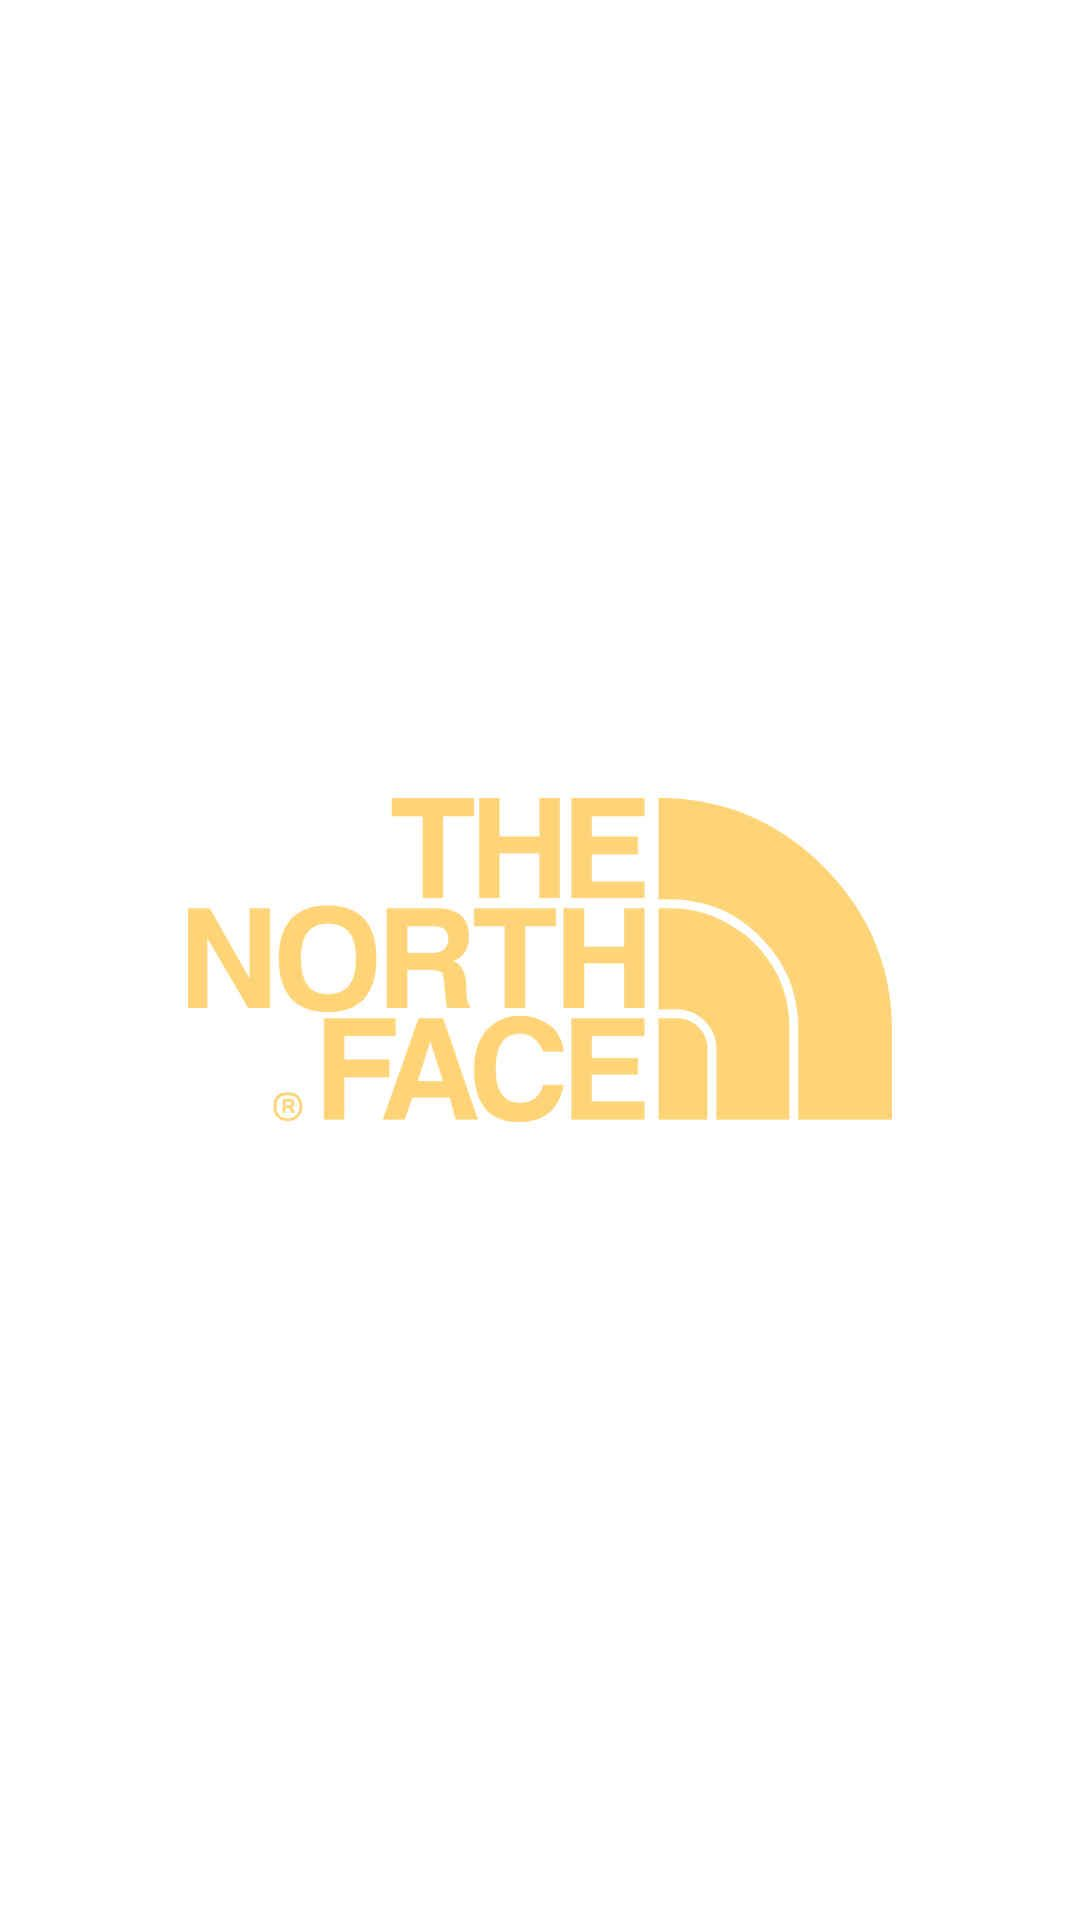 Iphone the north face free iphone wallpaper - The north face wallpaper for iphone ...